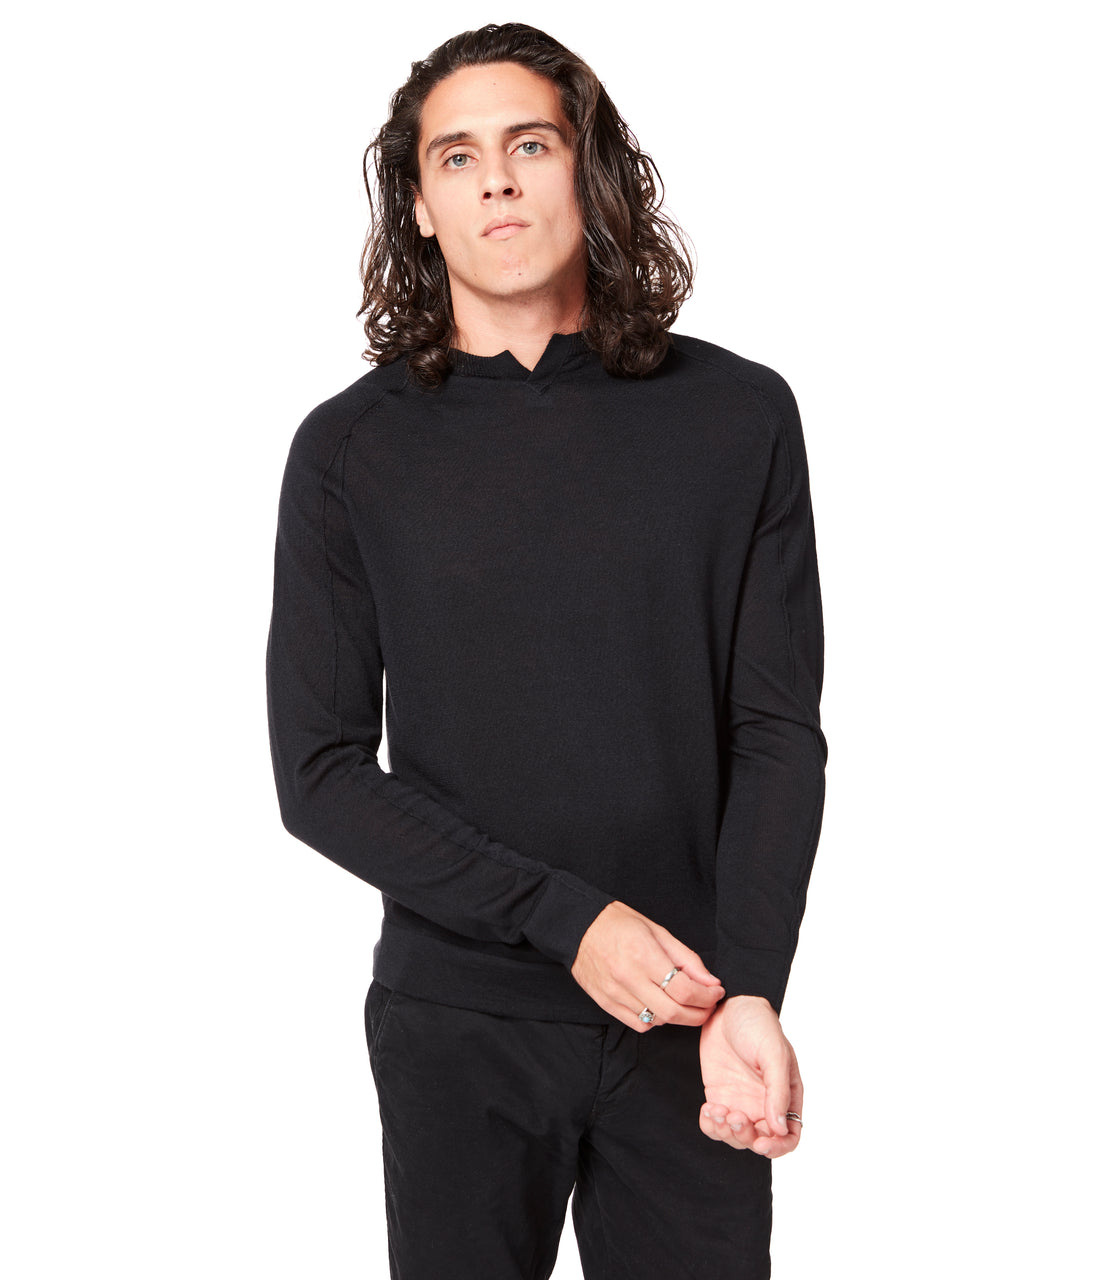 MVP V-Notch Sweater - Black - Good Man Brand - MVP V-Notch Sweater - Black